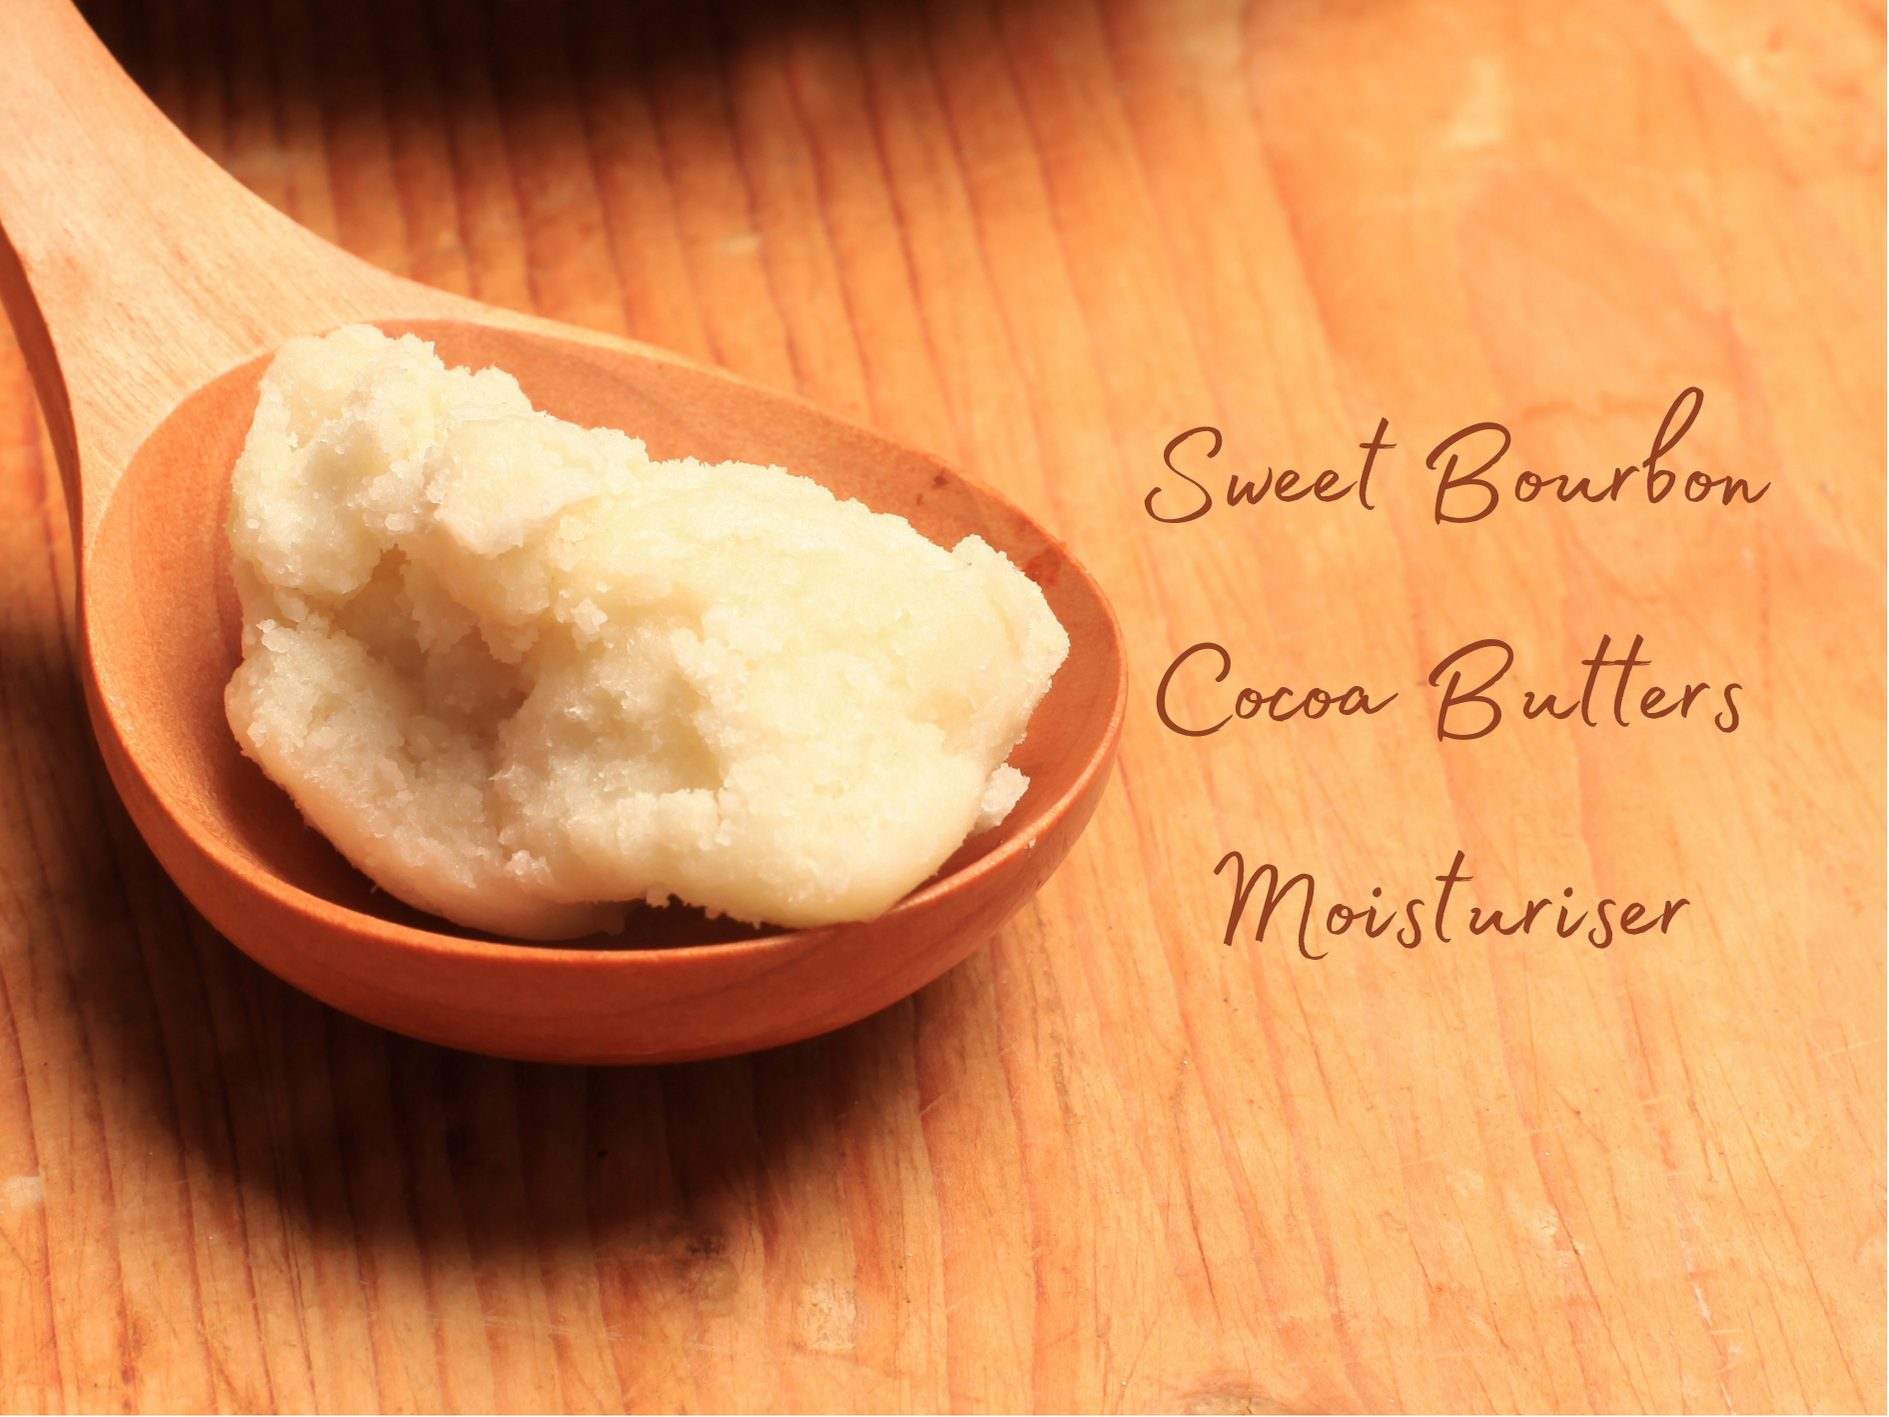 [Health & Beauty Review] The Butters Sweet Bourbon Cocoa Butters Moisturiser